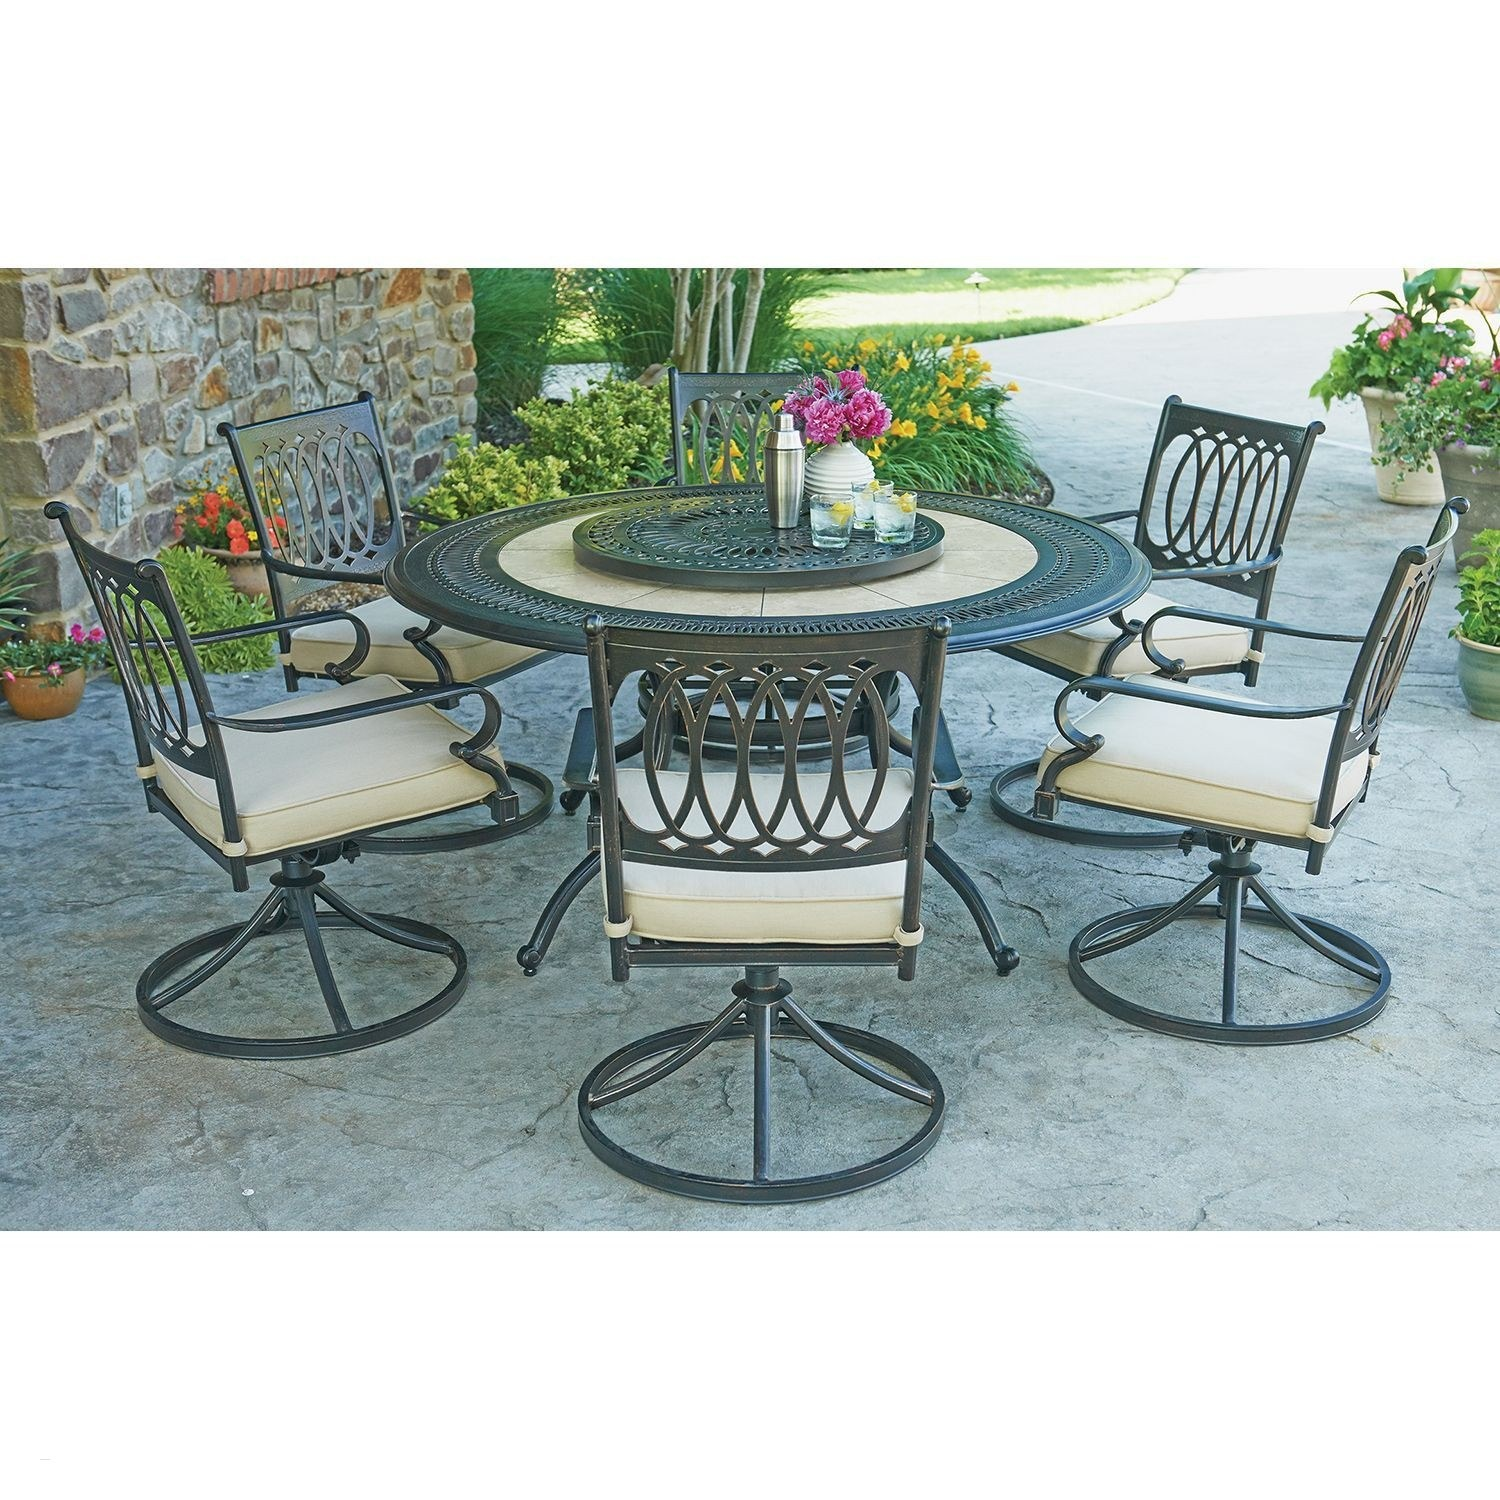 outdoor patio sideboard table square teak dining wood garden and chairs espresso console white many pre built kitchen islands come hand with complete barbecue station including